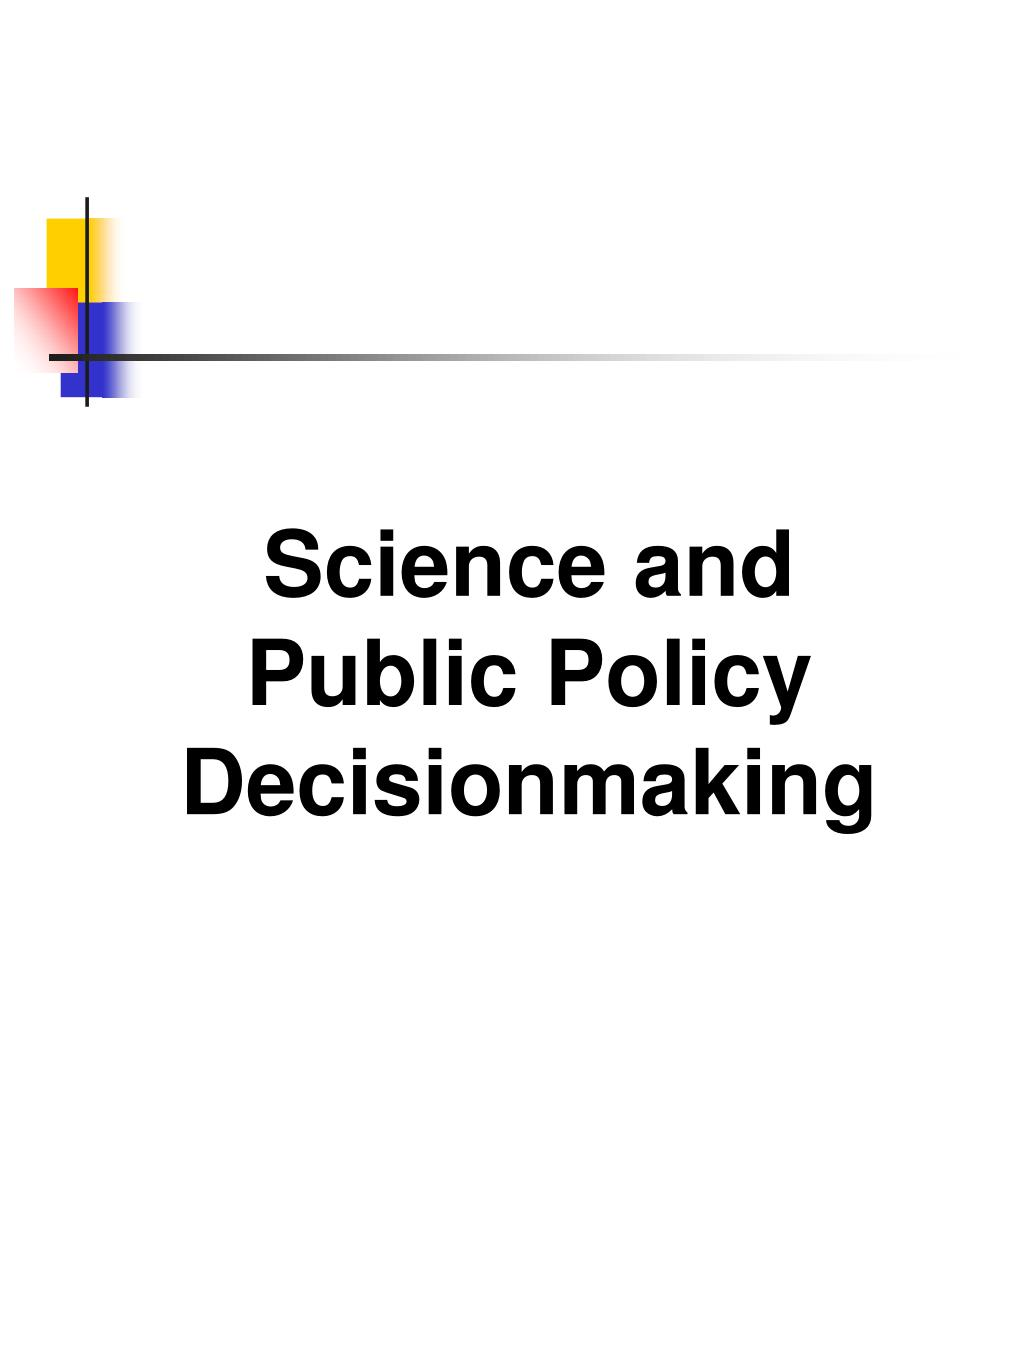 Science and Public Policy Decisionmaking